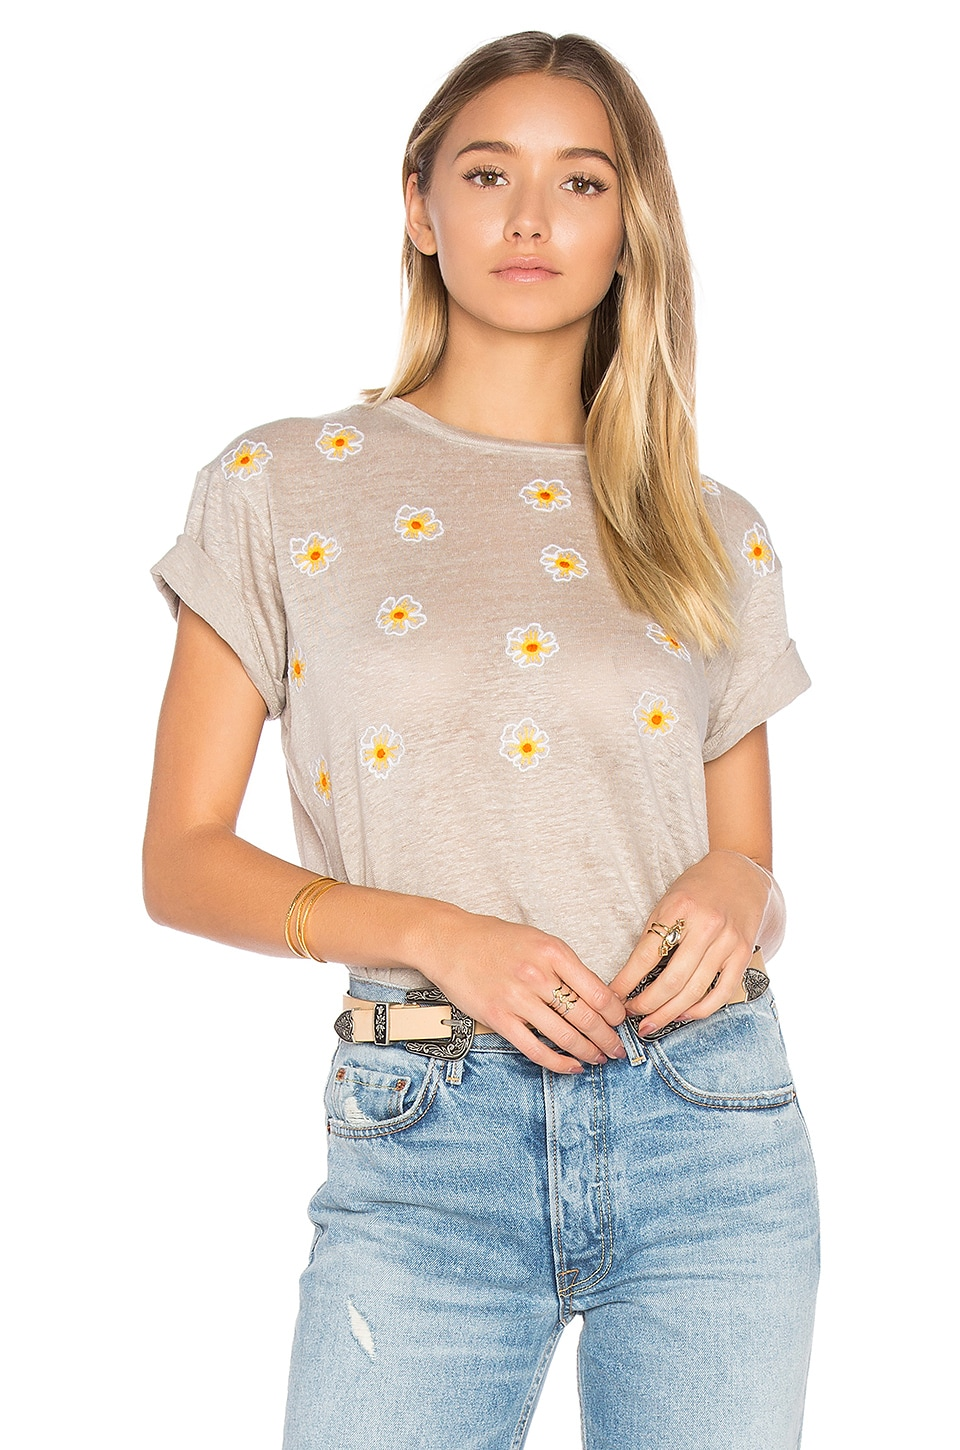 California Poppies Tee by Banner Day